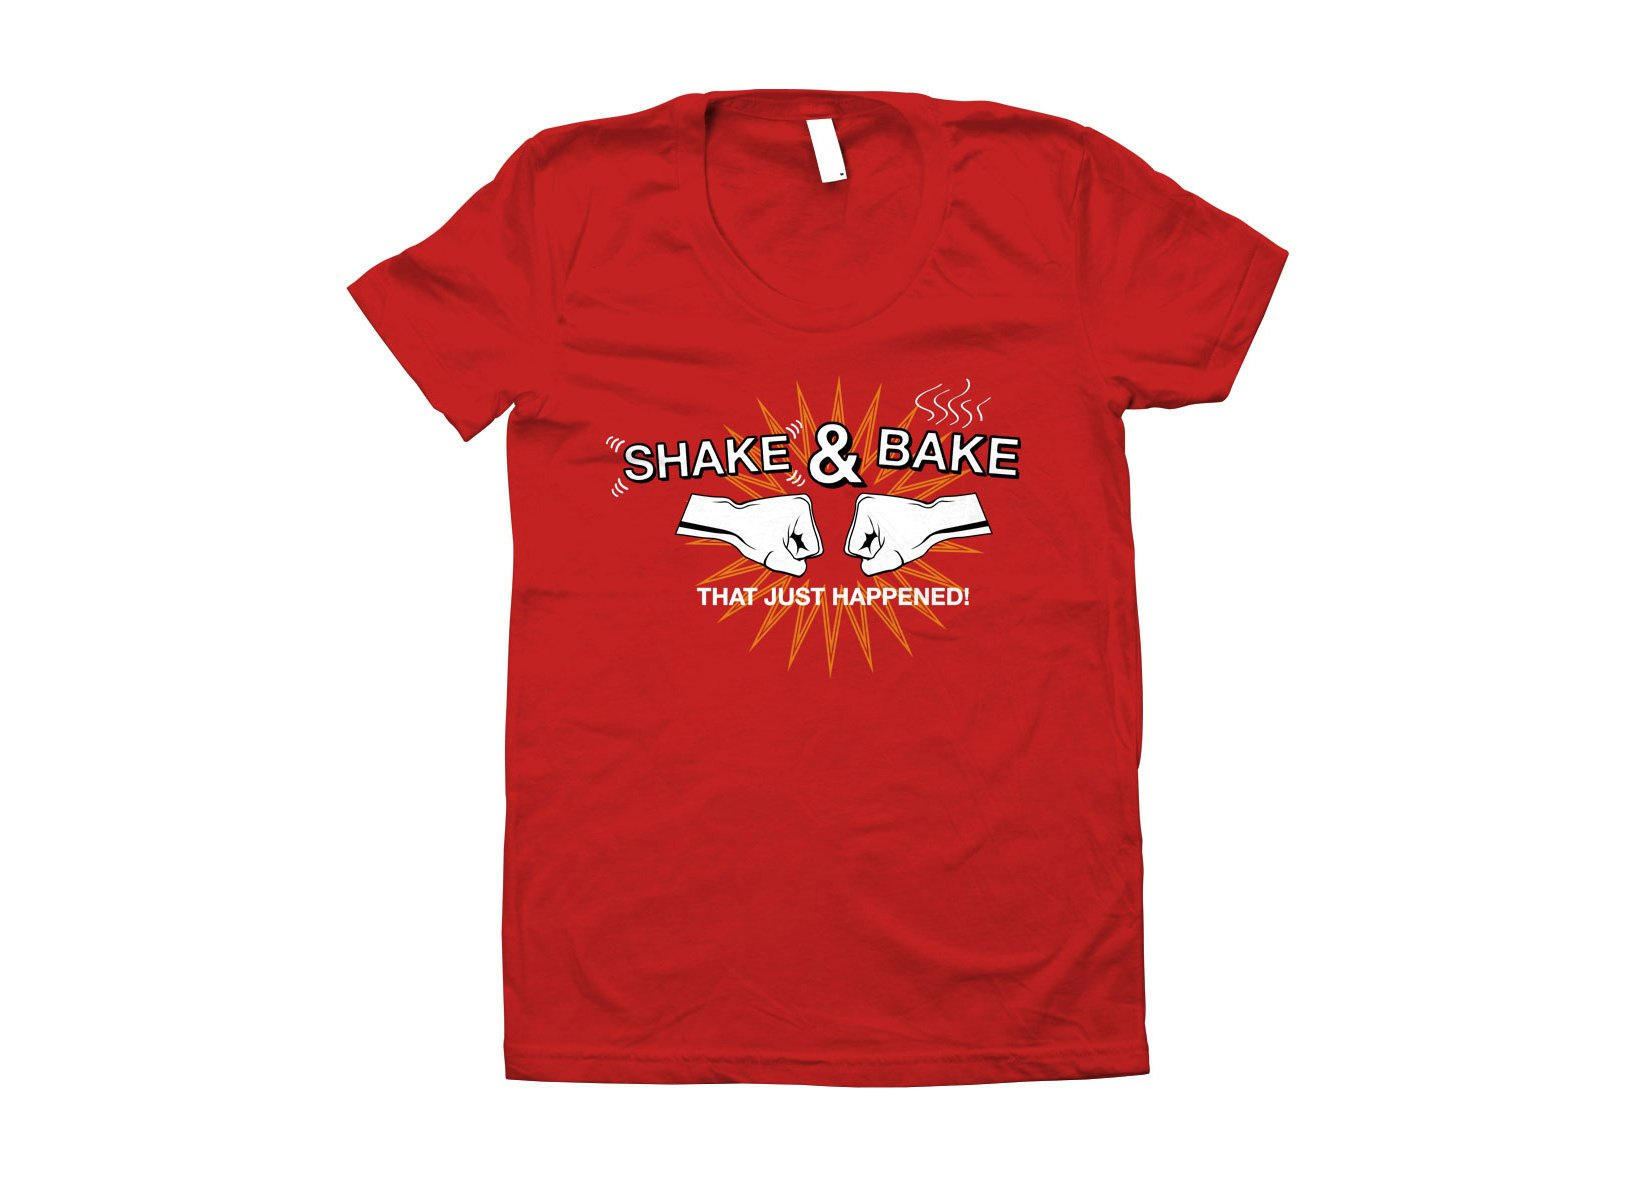 Shake & Bake on Juniors T-Shirt